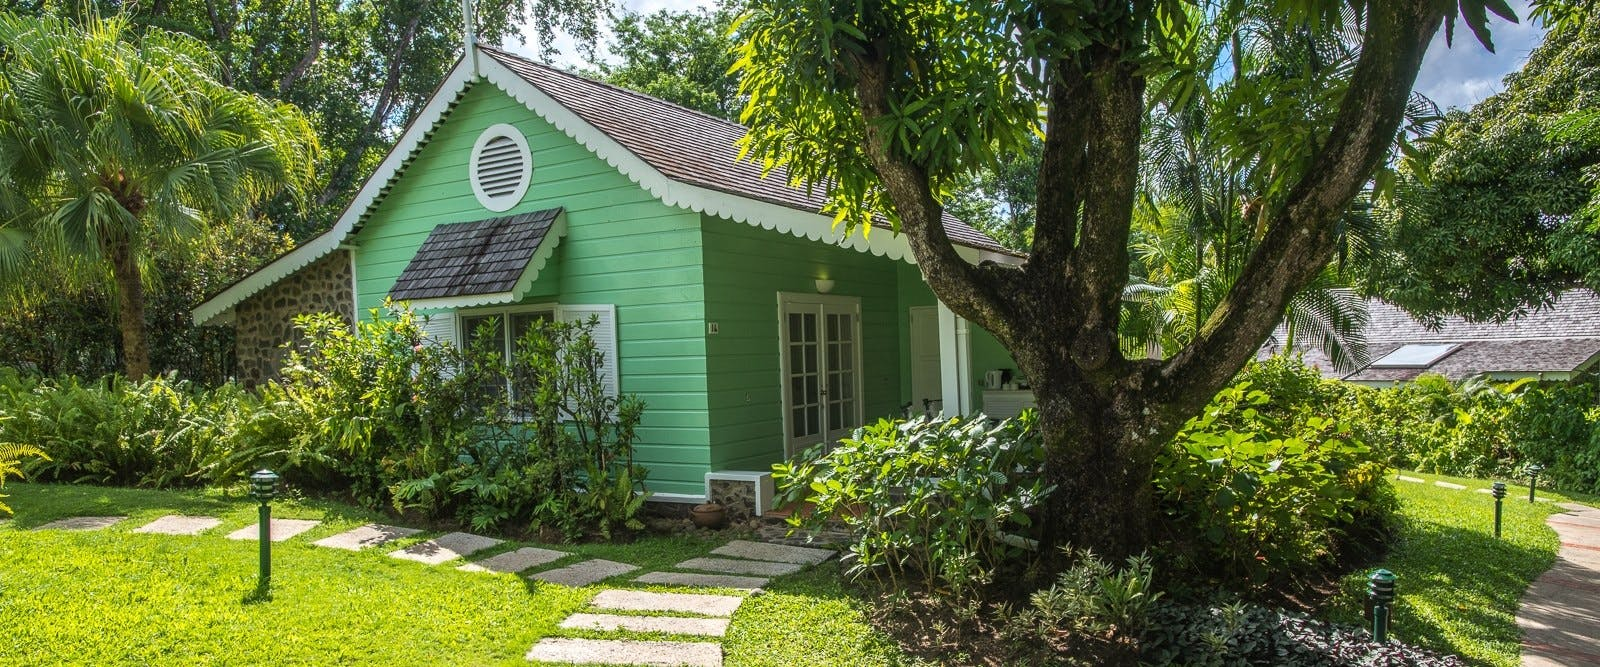 Deluxe cottage exterior at East Winds, St Lucia